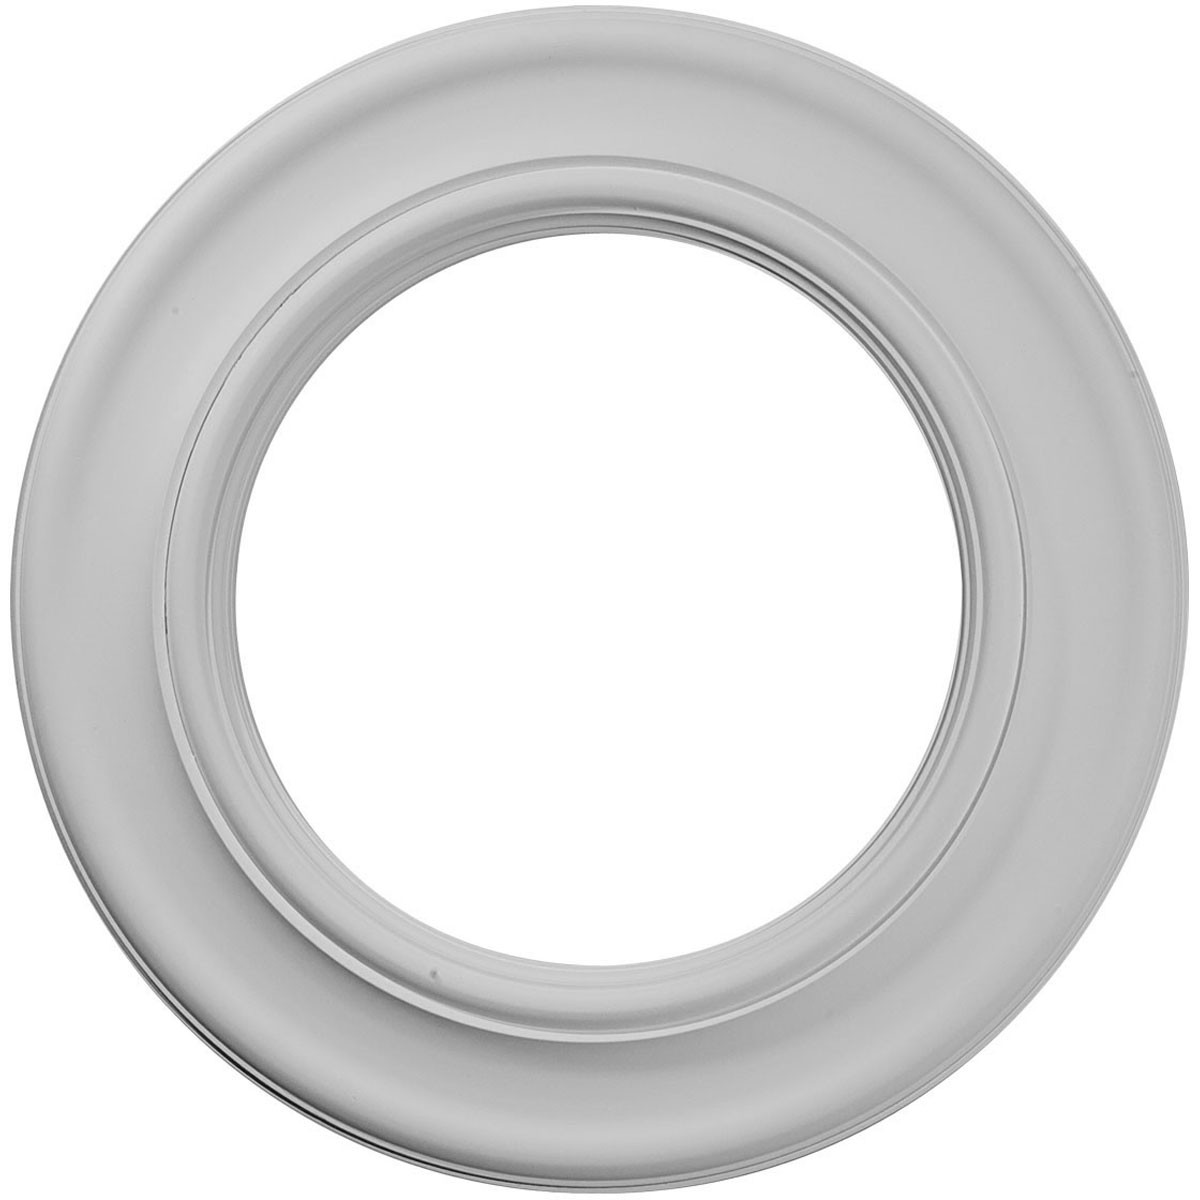 """EM-CM20HO - 20 7/8""""OD x 12 7/8""""ID x 1""""P Holmdel Ceiling Medallion (Fits Canopies up to 12 7/8"""")"""